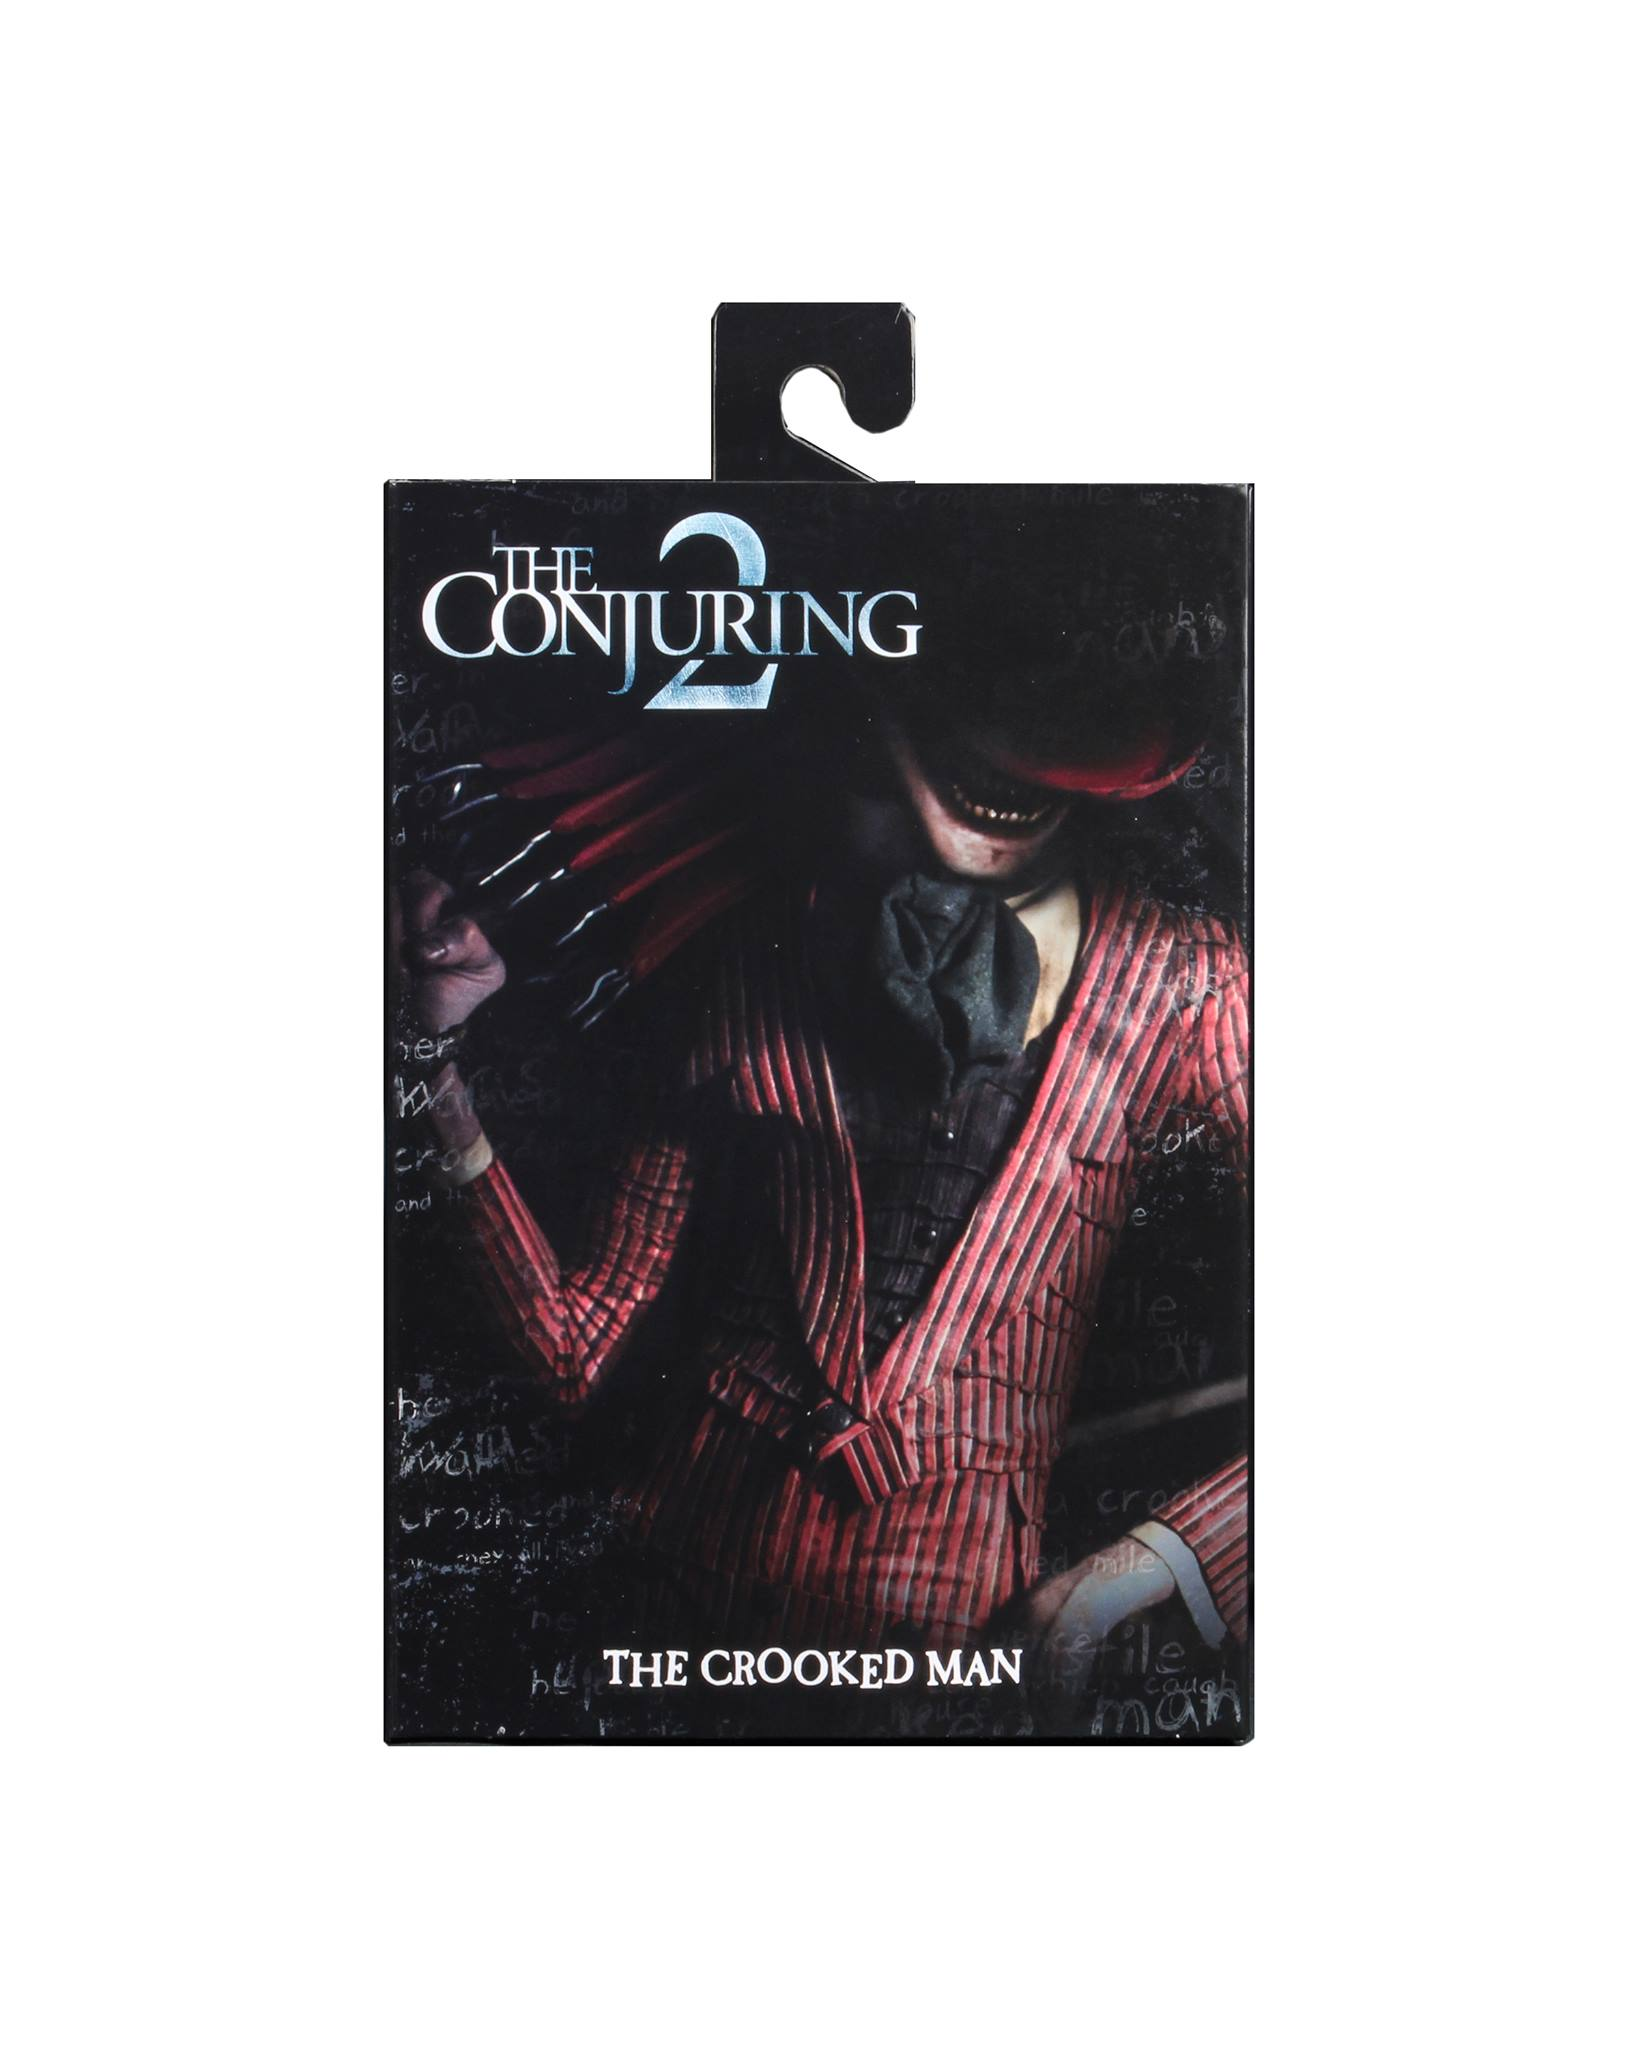 NECA Crooked Man Packaging 001